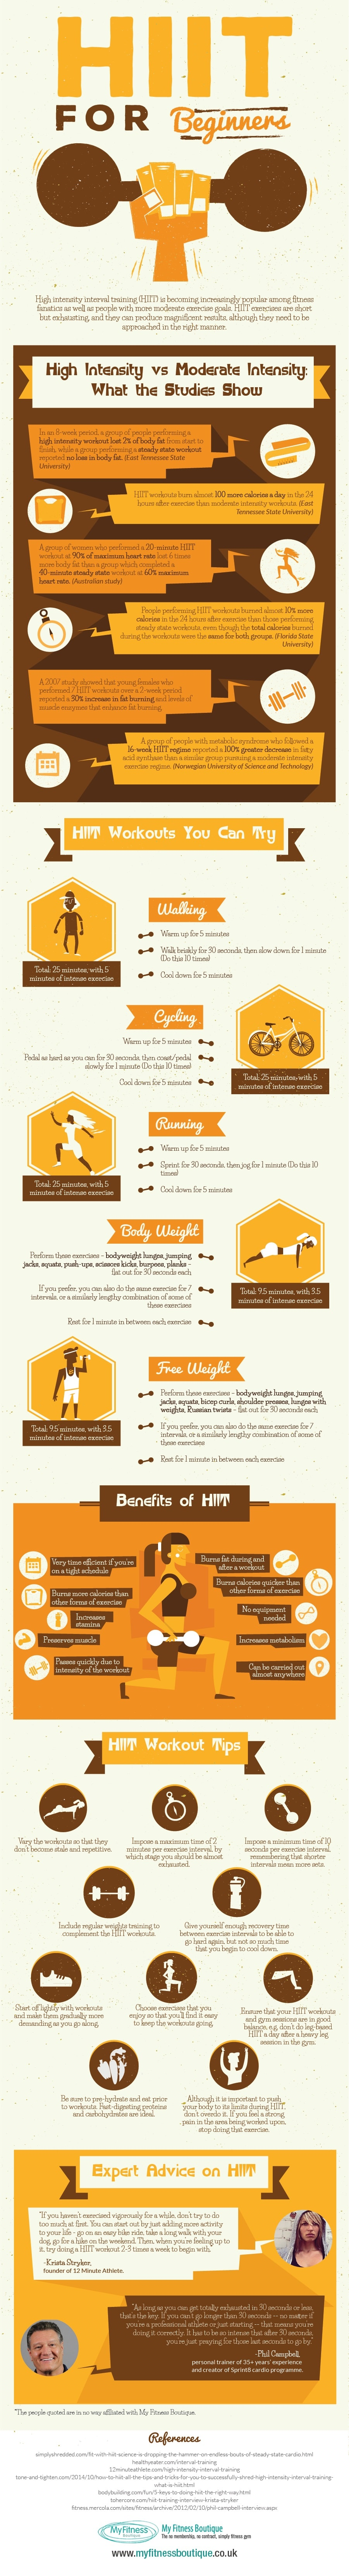 HIIT for Beginners Infographic